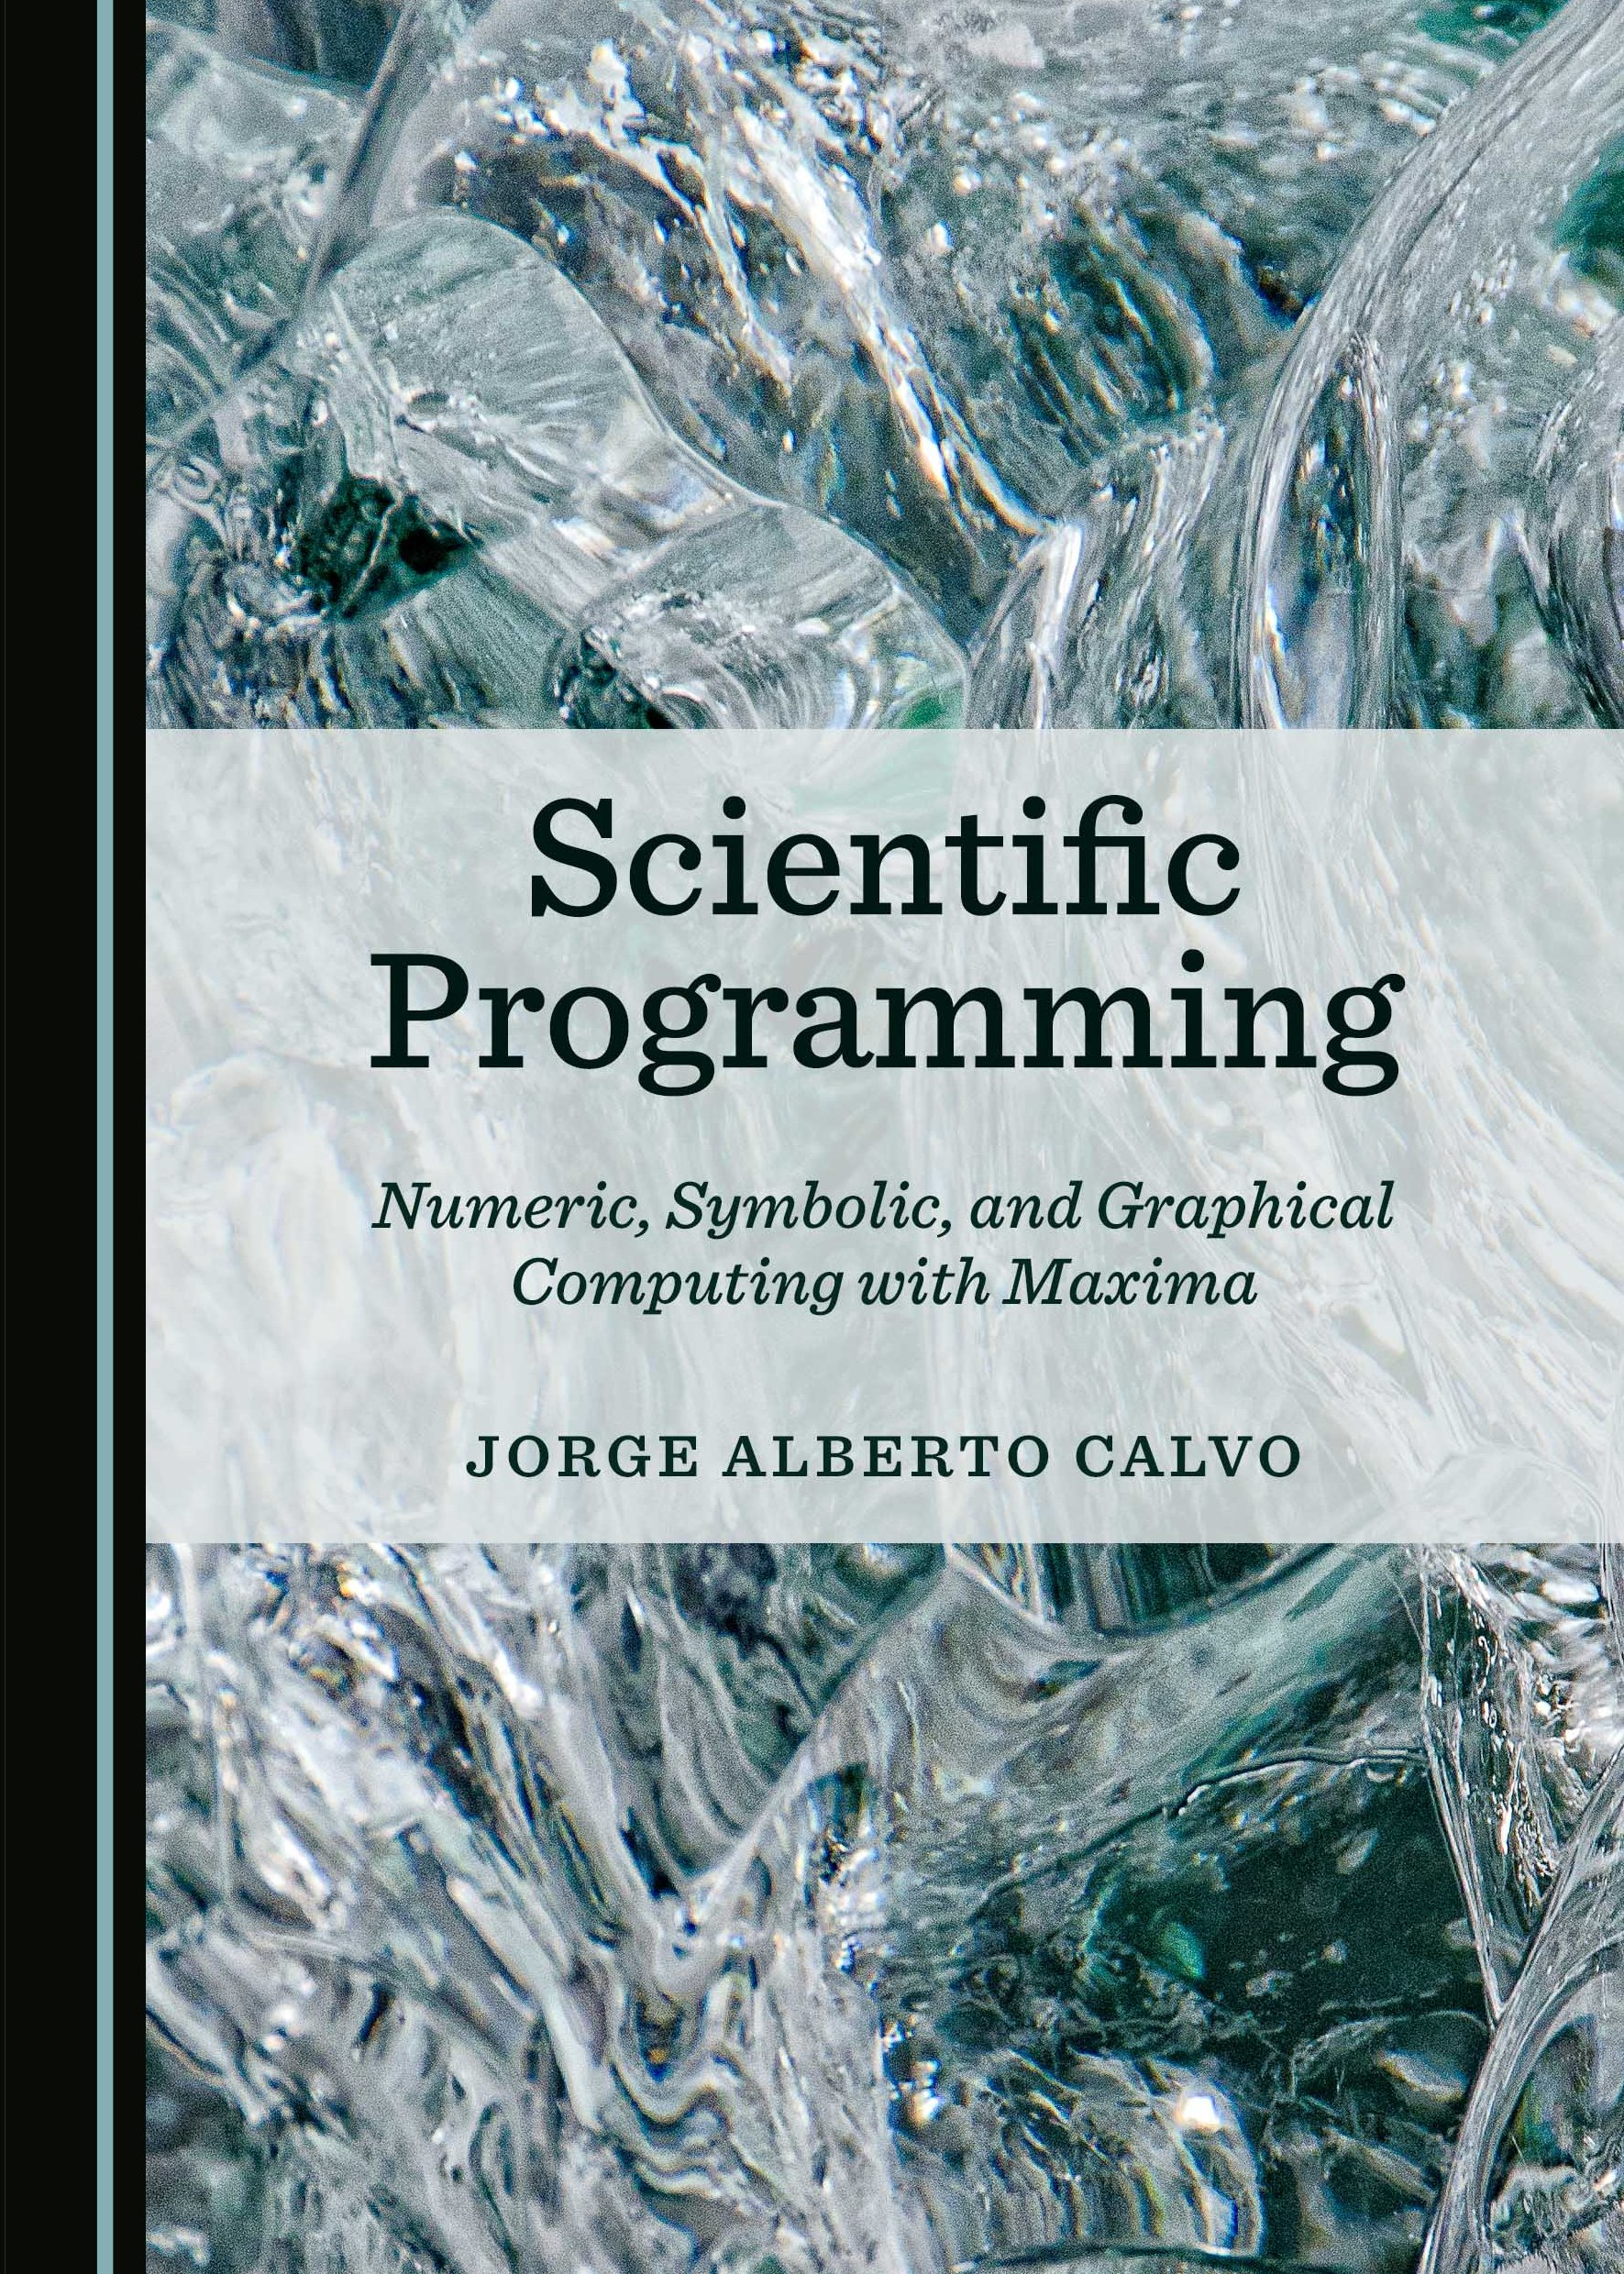 Scientific Programming: Numeric, Symbolic, and Graphical Computing with Maxima